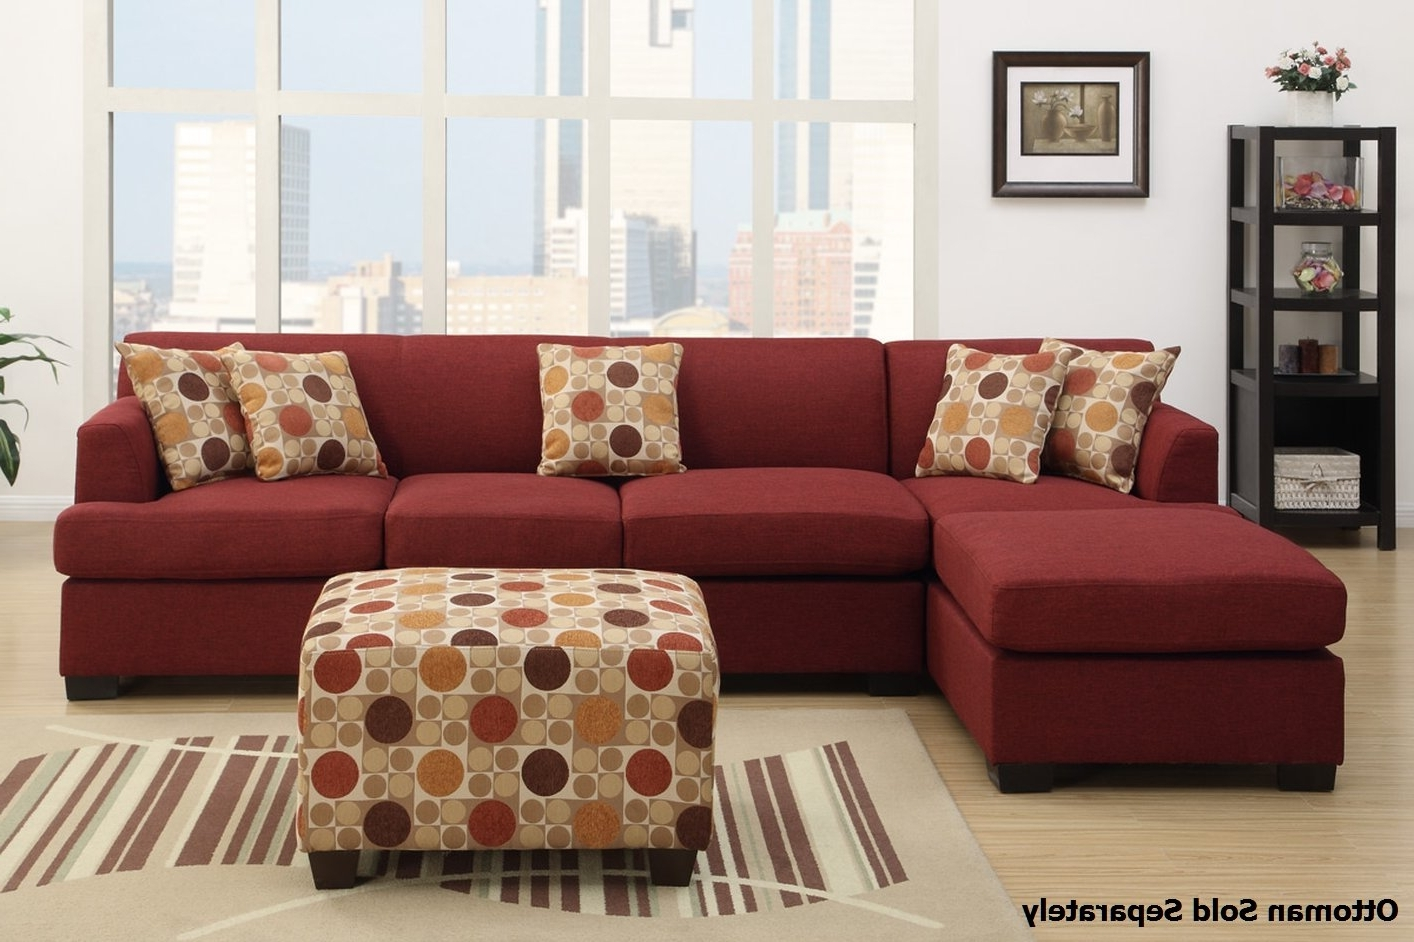 Furniture : Sectional Sofa 95 Recliner 95112 75008 Recliner Large Inside Well Known 96x96 Sectional Sofas (View 20 of 20)